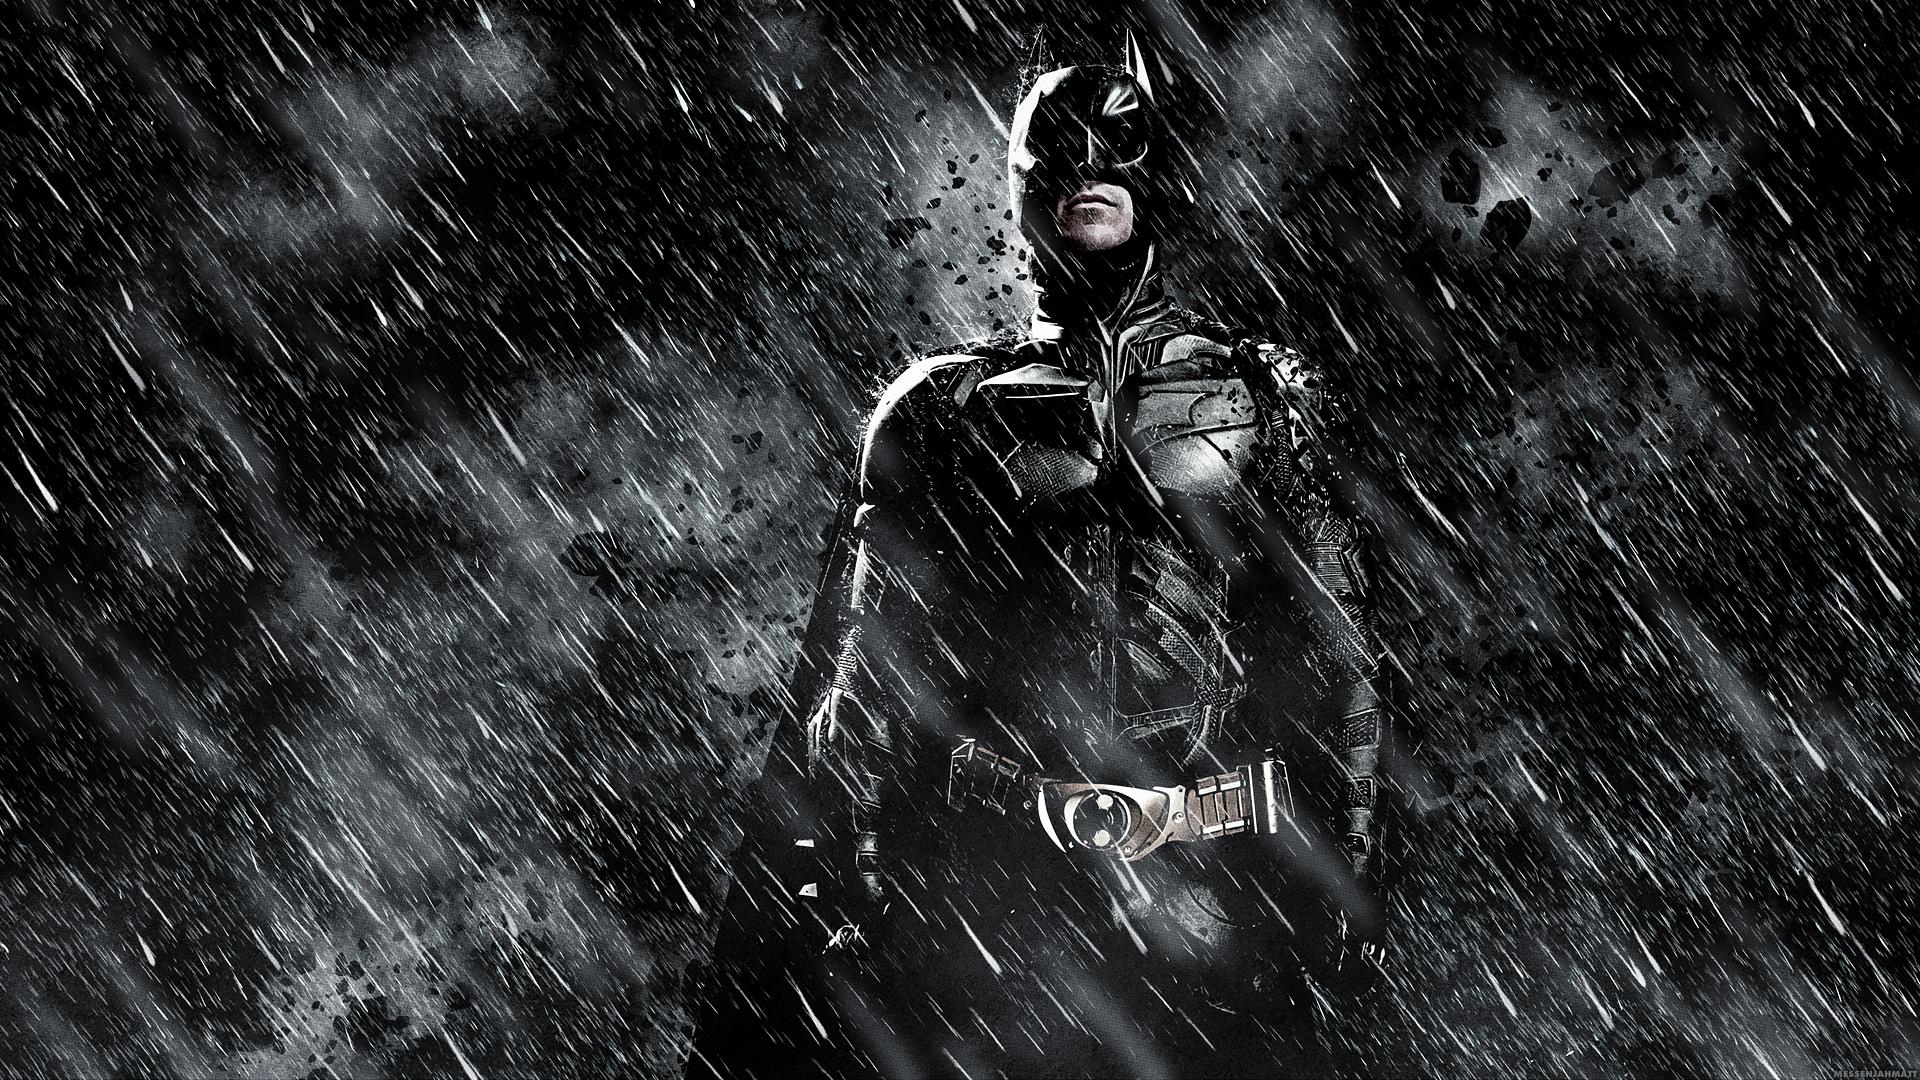 Batman in The Dark Knight Rises Wallpapers HD Wallpapers 1920x1080